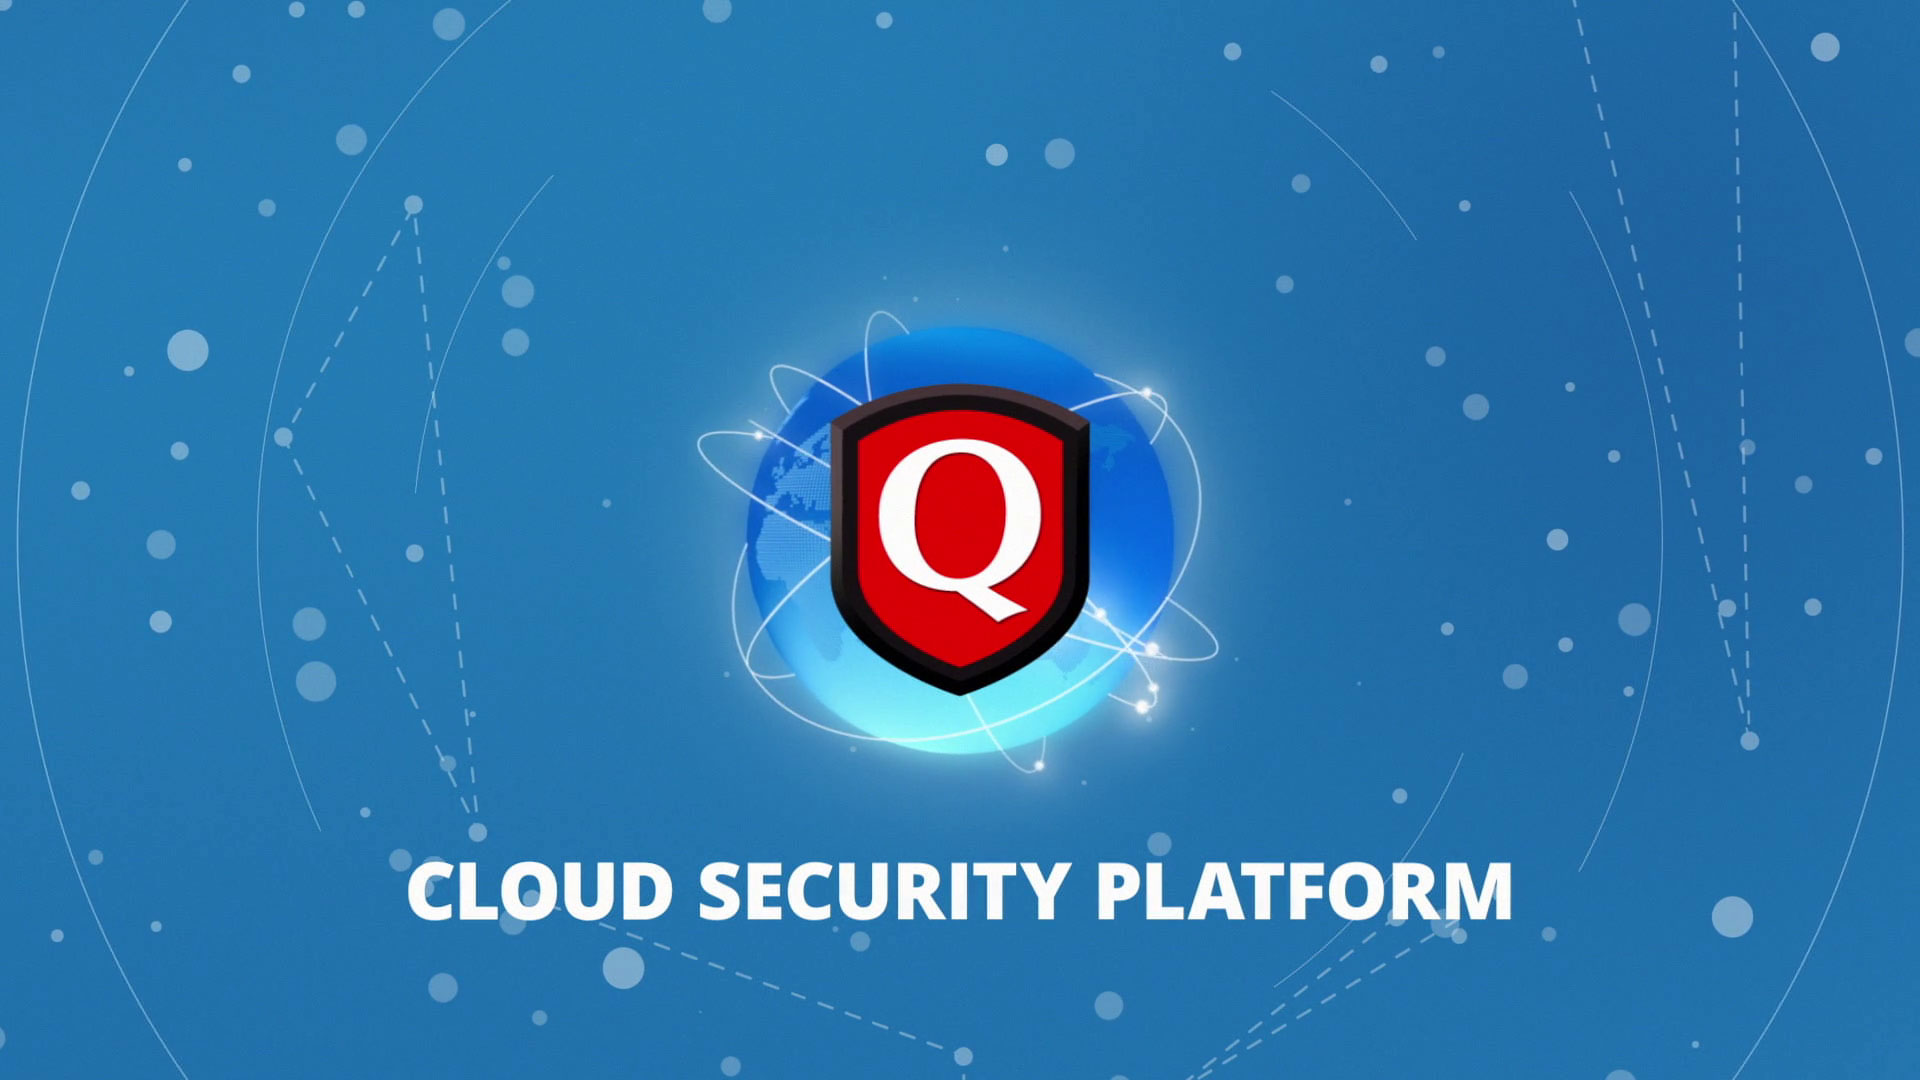 Cloud Security Platform